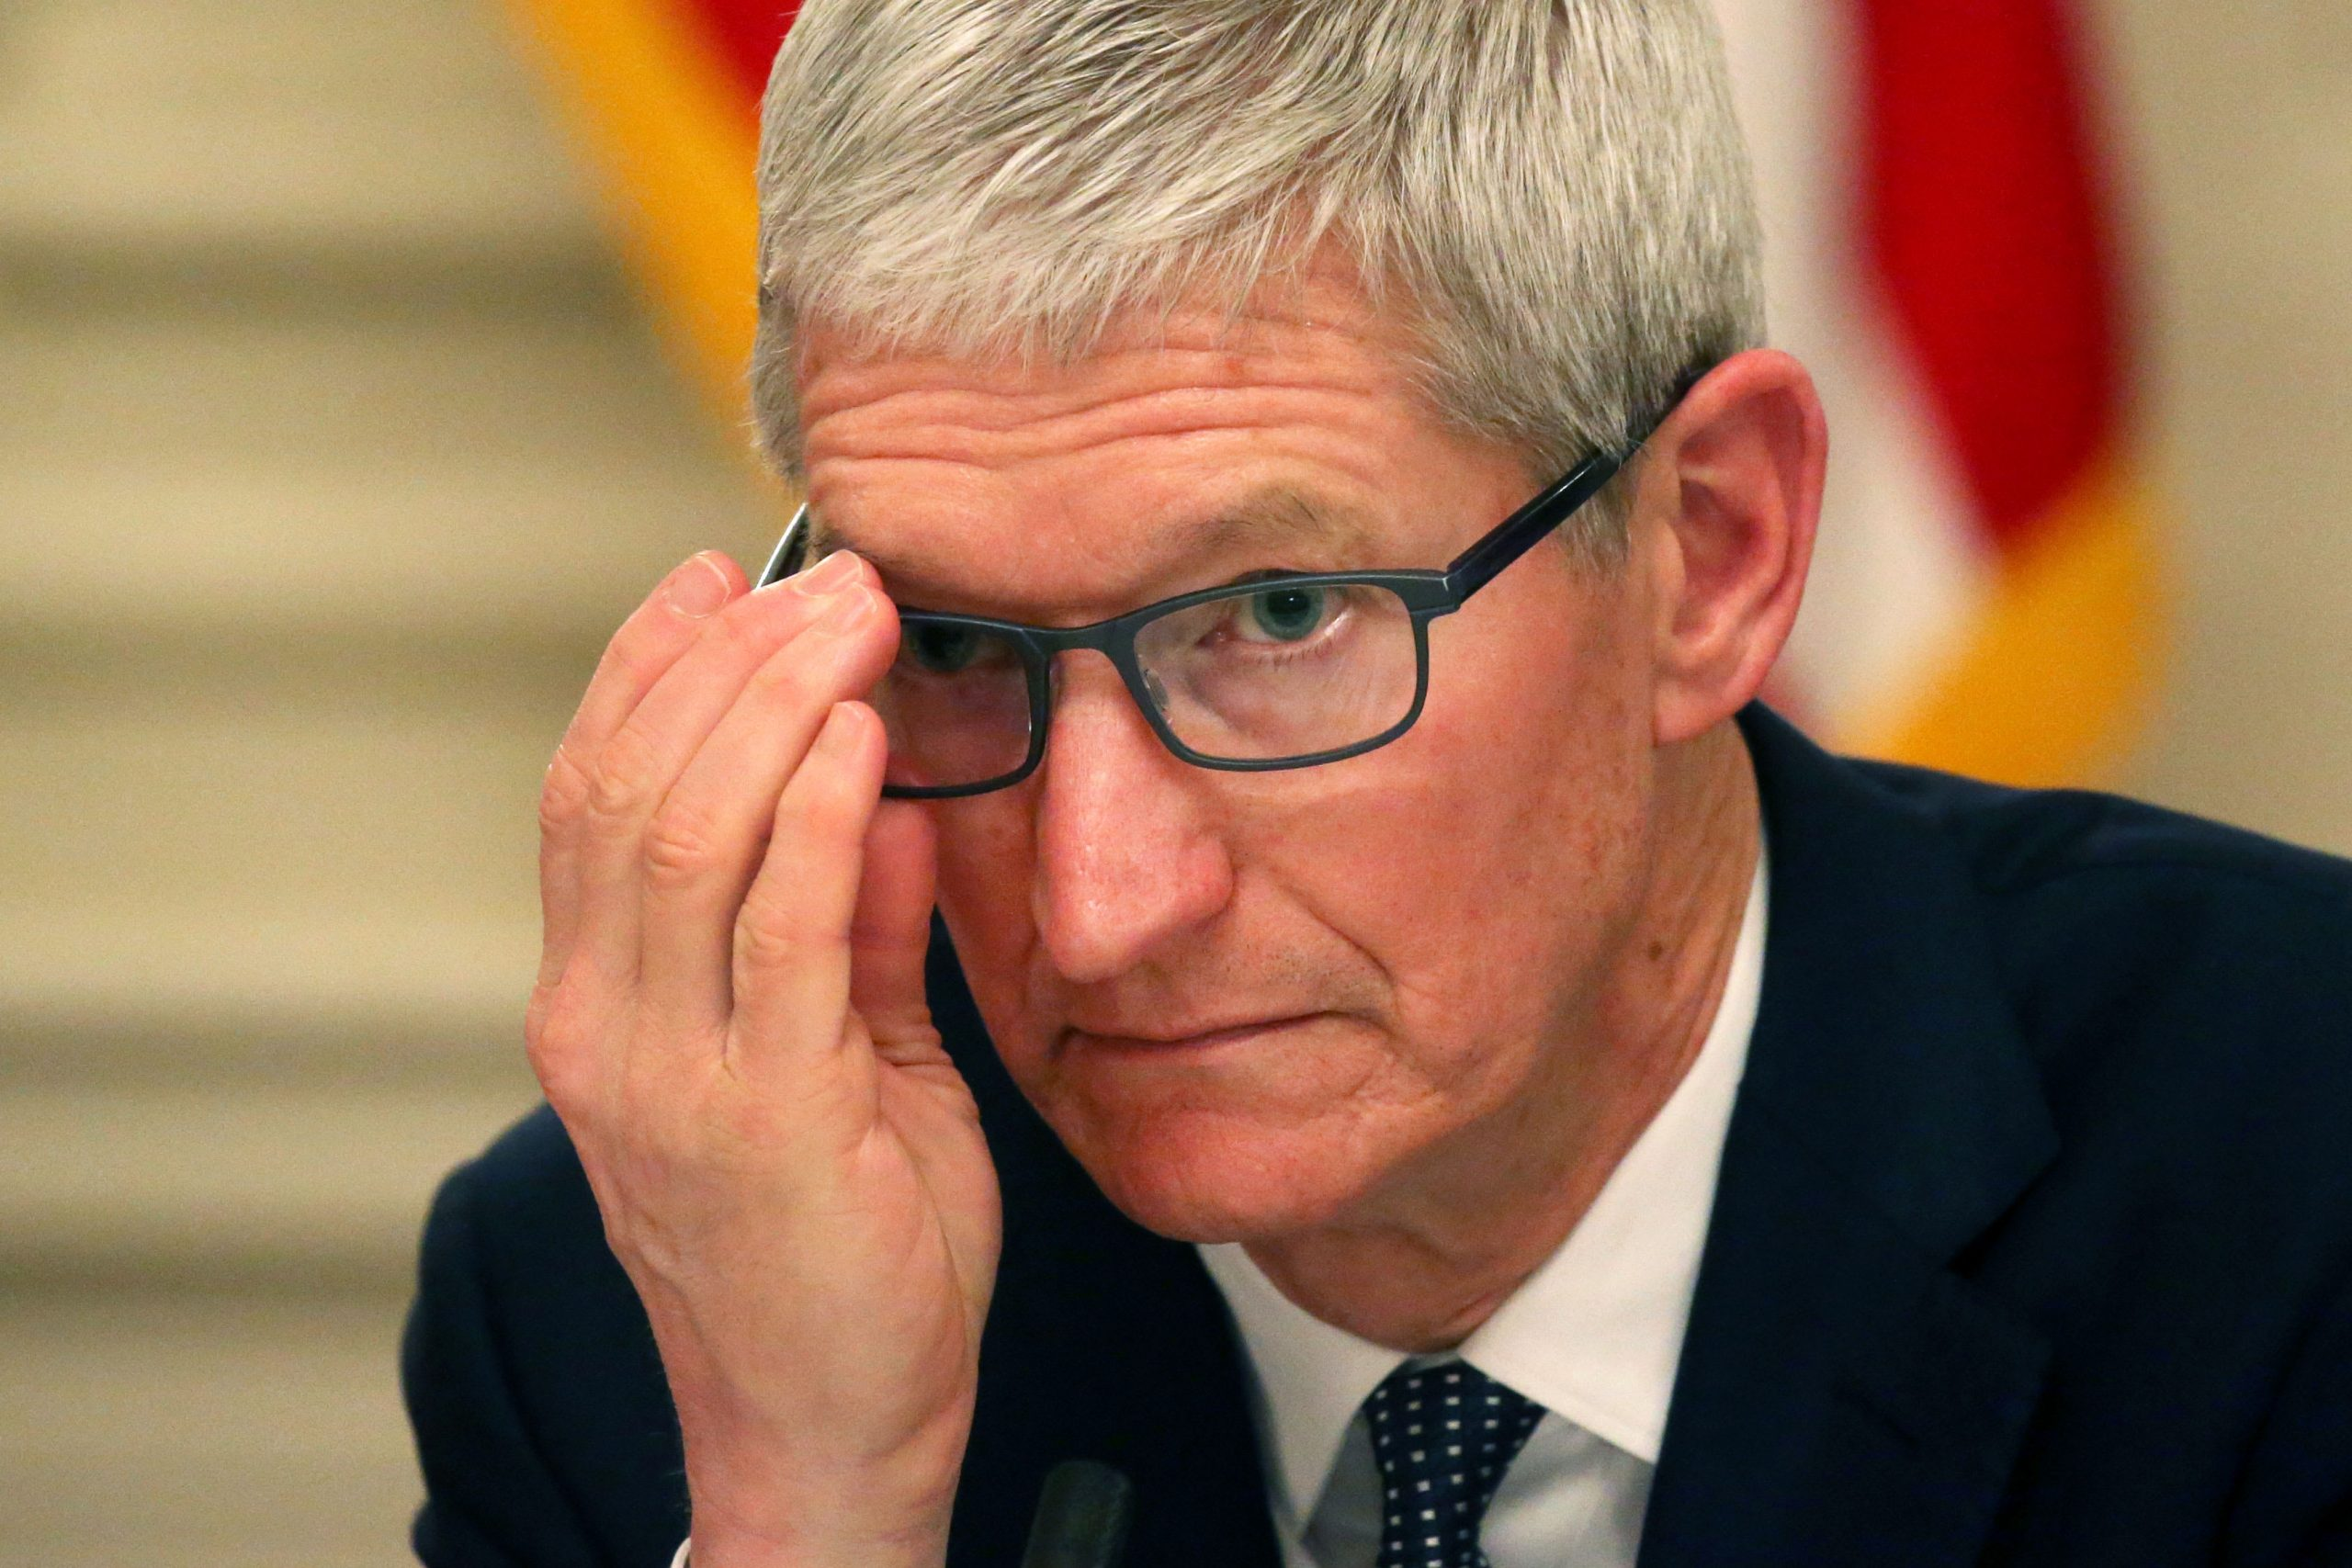 apple-doubles-down-in-fight-with-fortnite-creator-epic-games,-seeks-damages-for-breach-of-contract